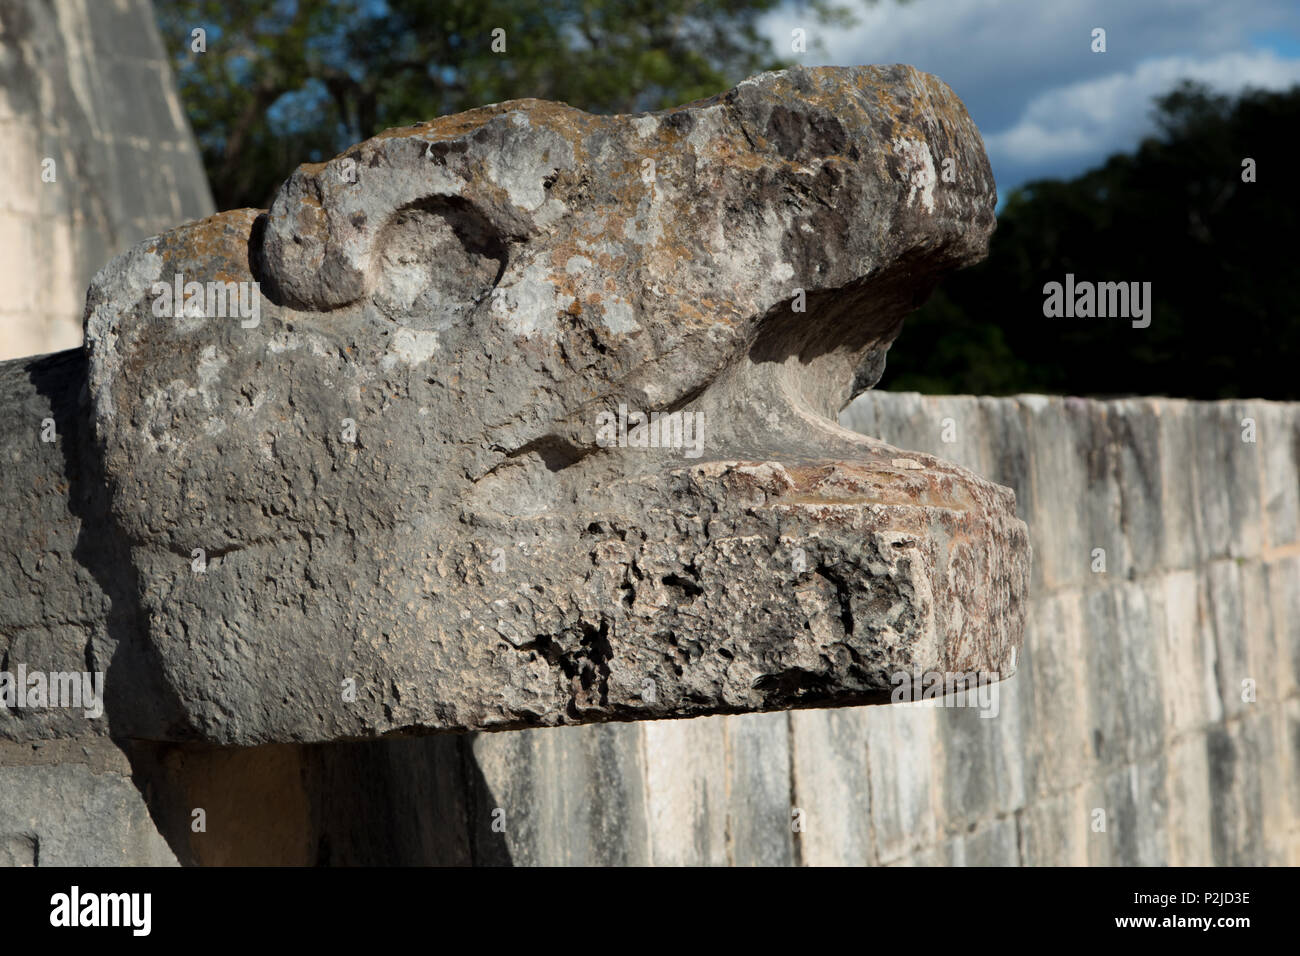 A stone monument to Kukulkan at the Grand Ballcourt of Chichen Itza in Yucatan, Mexico. - Stock Image